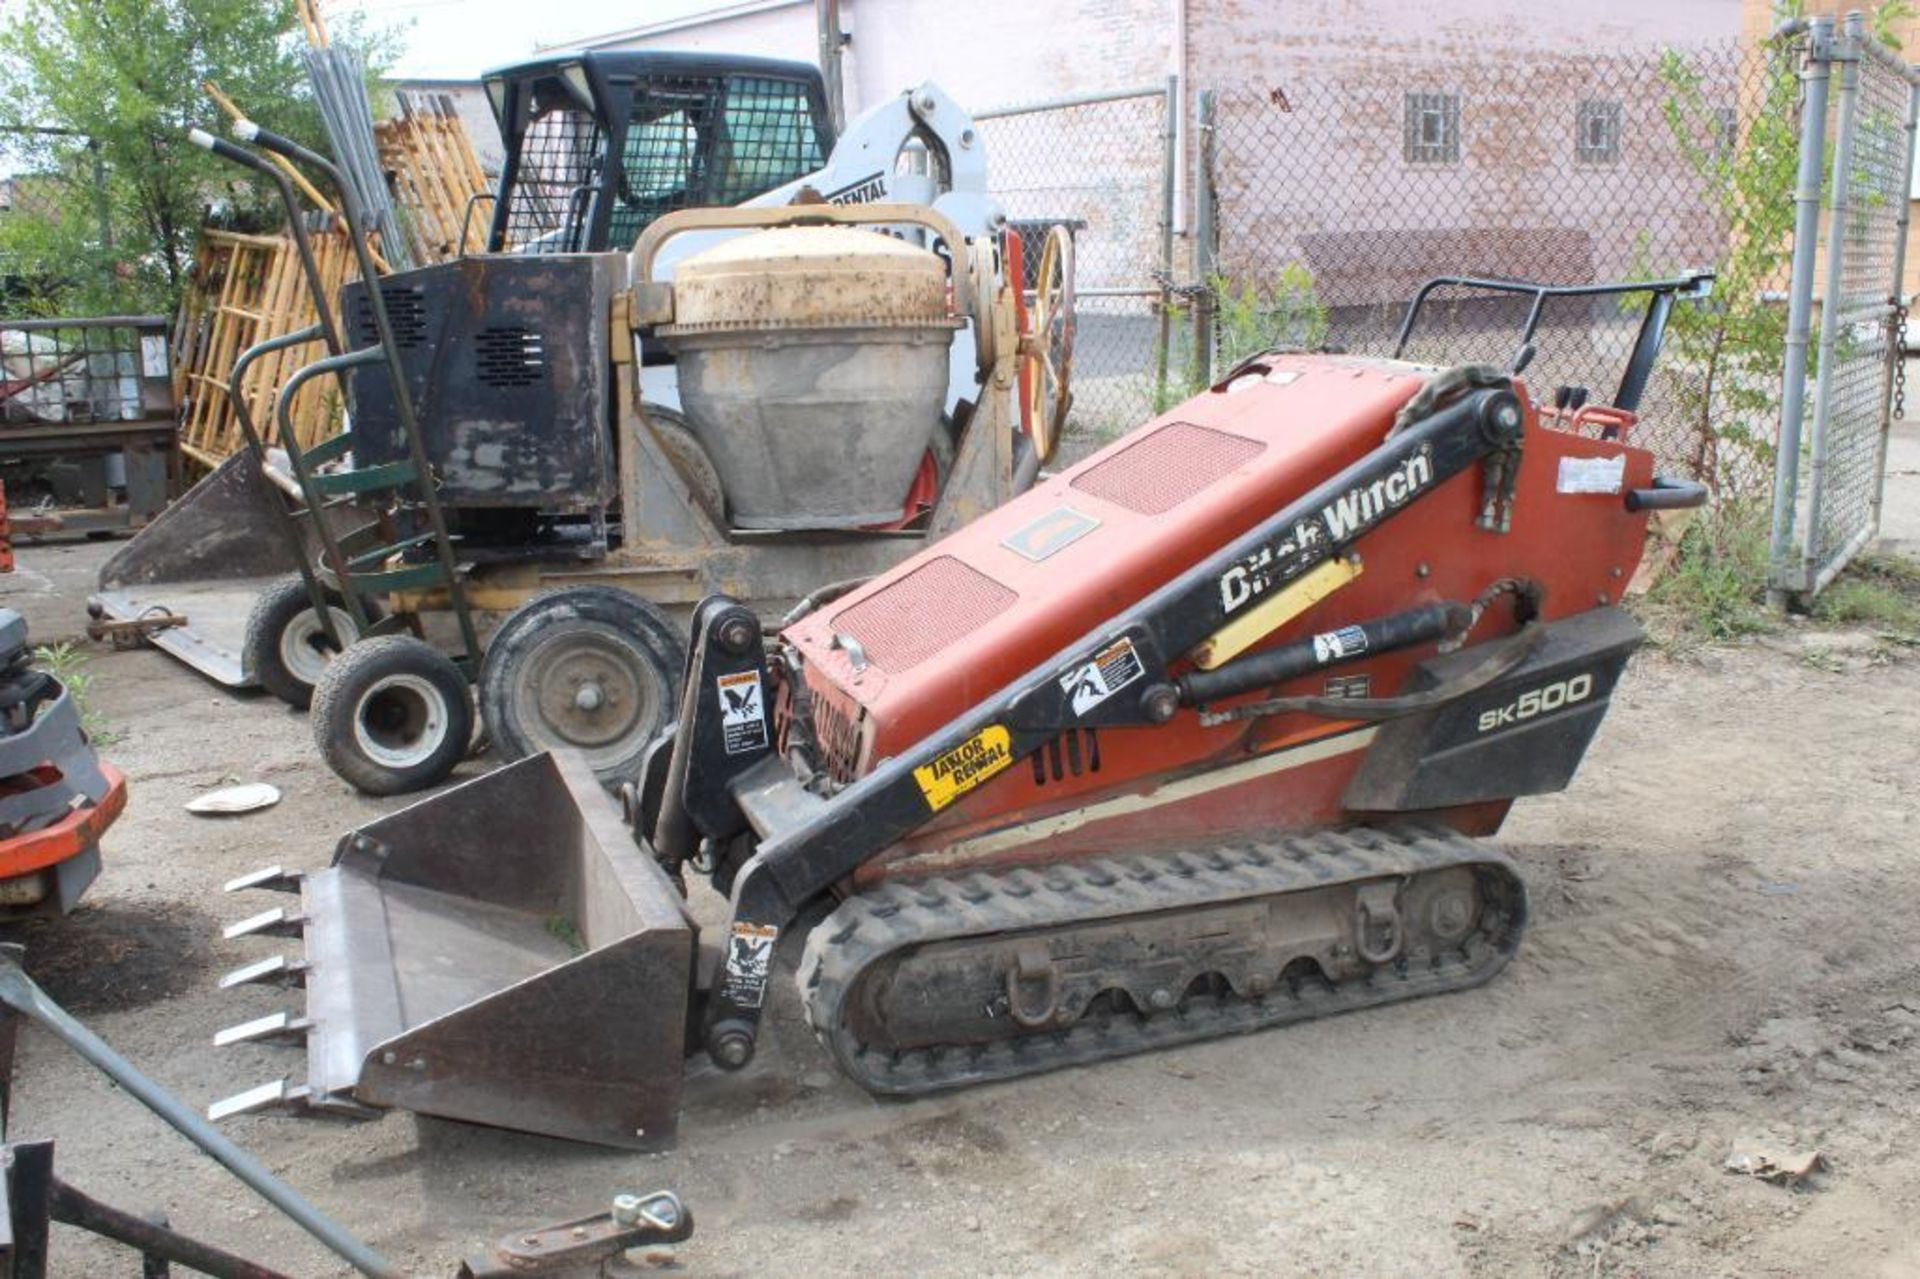 Ditch Witch Mini Skid Steer Model SK 500 with Loader Bucket and 5 Tooth Blade, S/N 1Y5485, 750 Indic